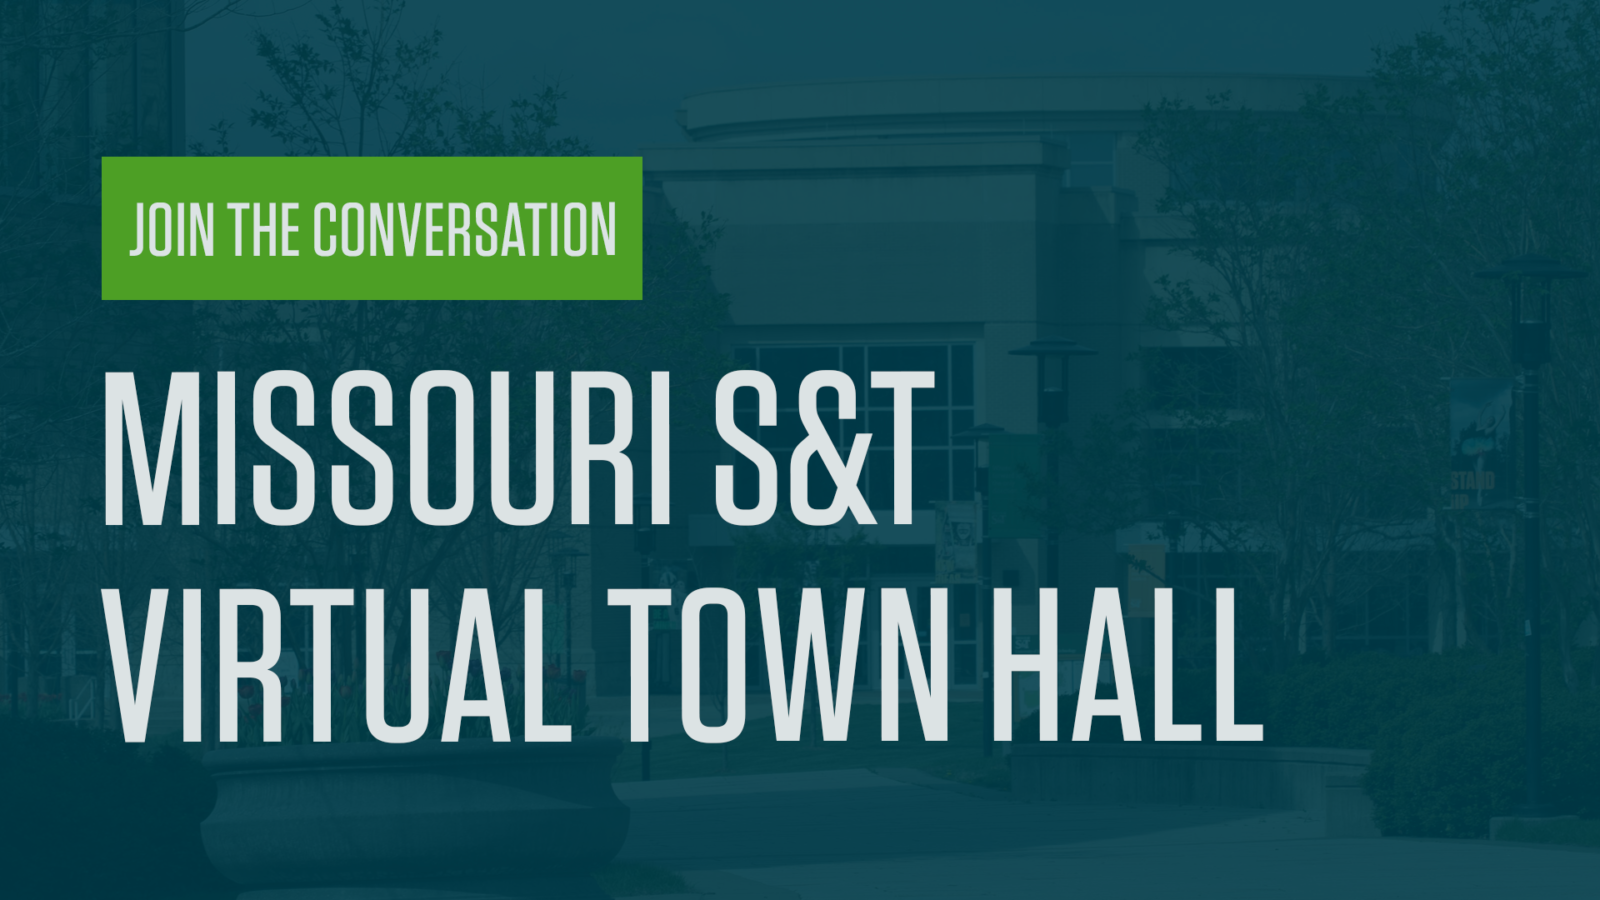 Missouri S&T virtual town hall